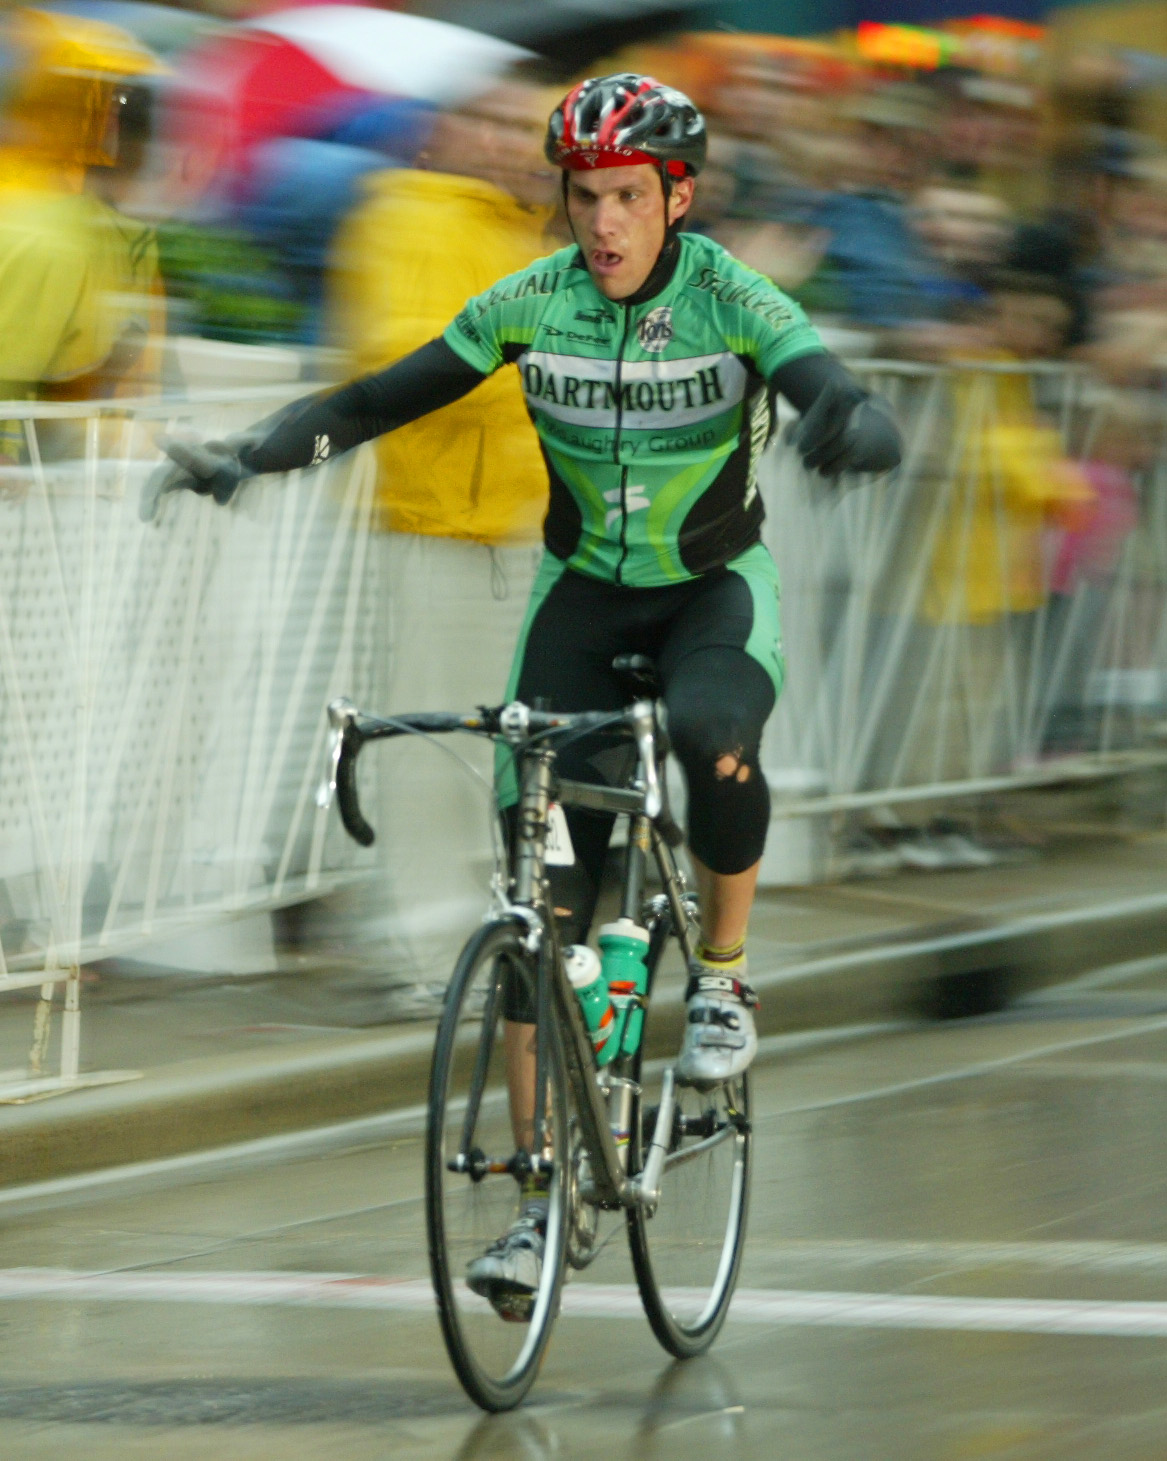 Mike winning the 2004 Collegiate Criterium National Championship